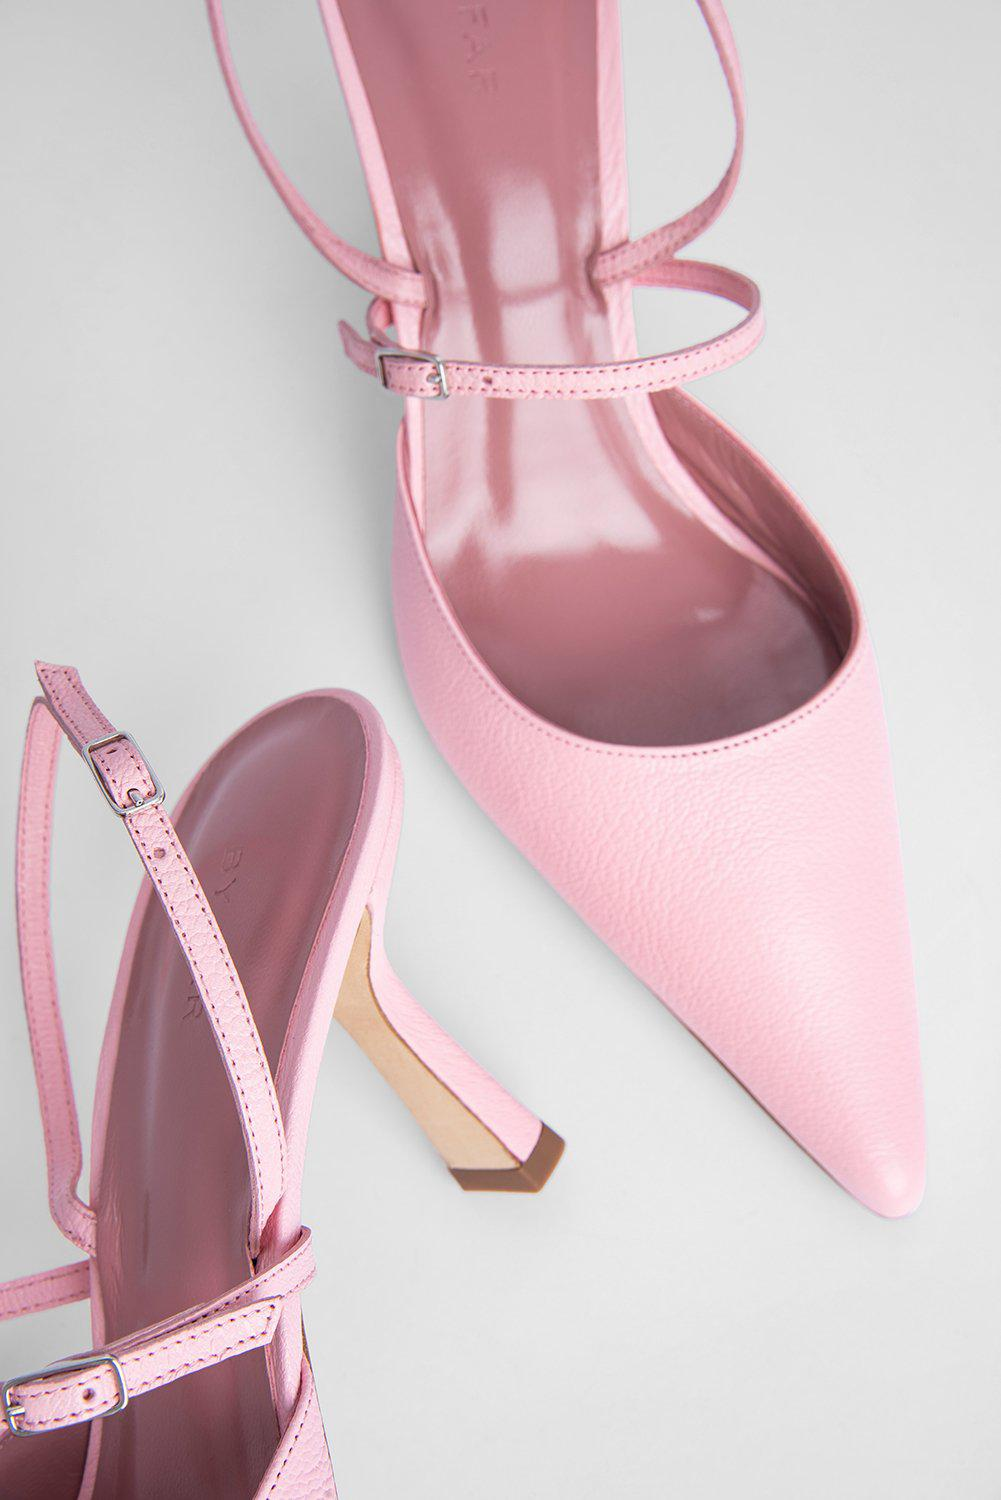 Tiffany Peony Grained Leather 2